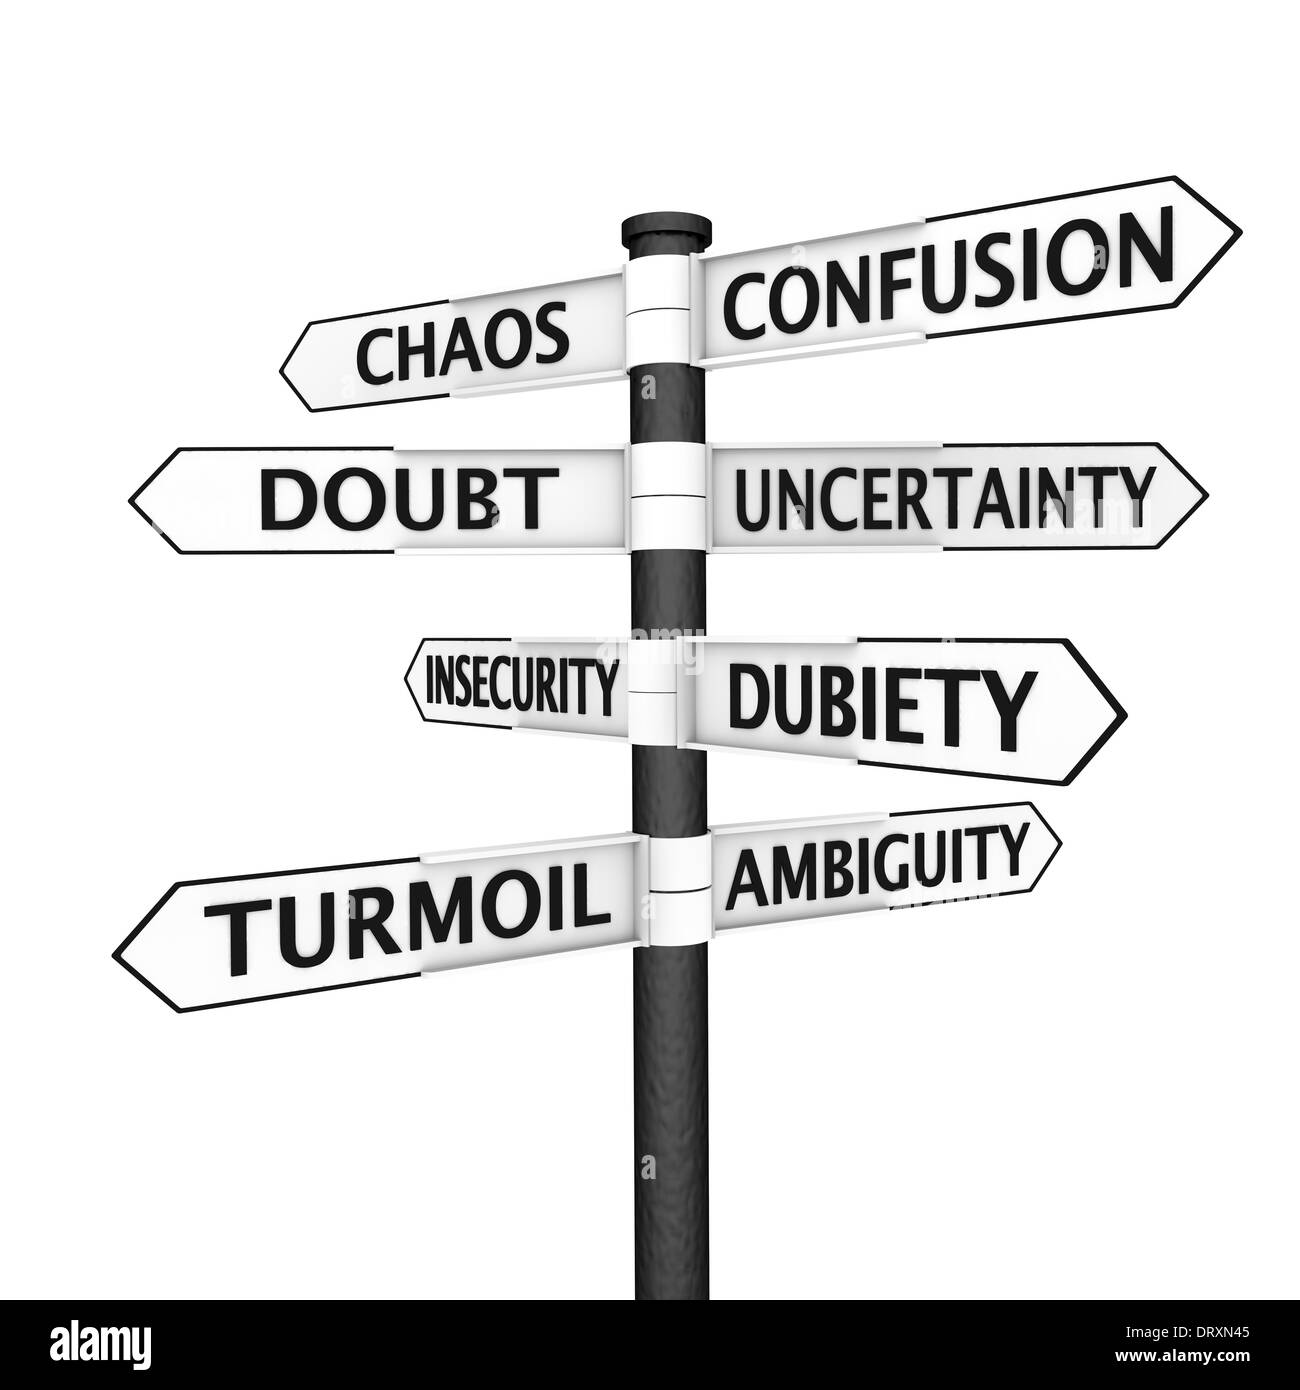 Signpost with confusion-related names pointing in every direction Stock Photo